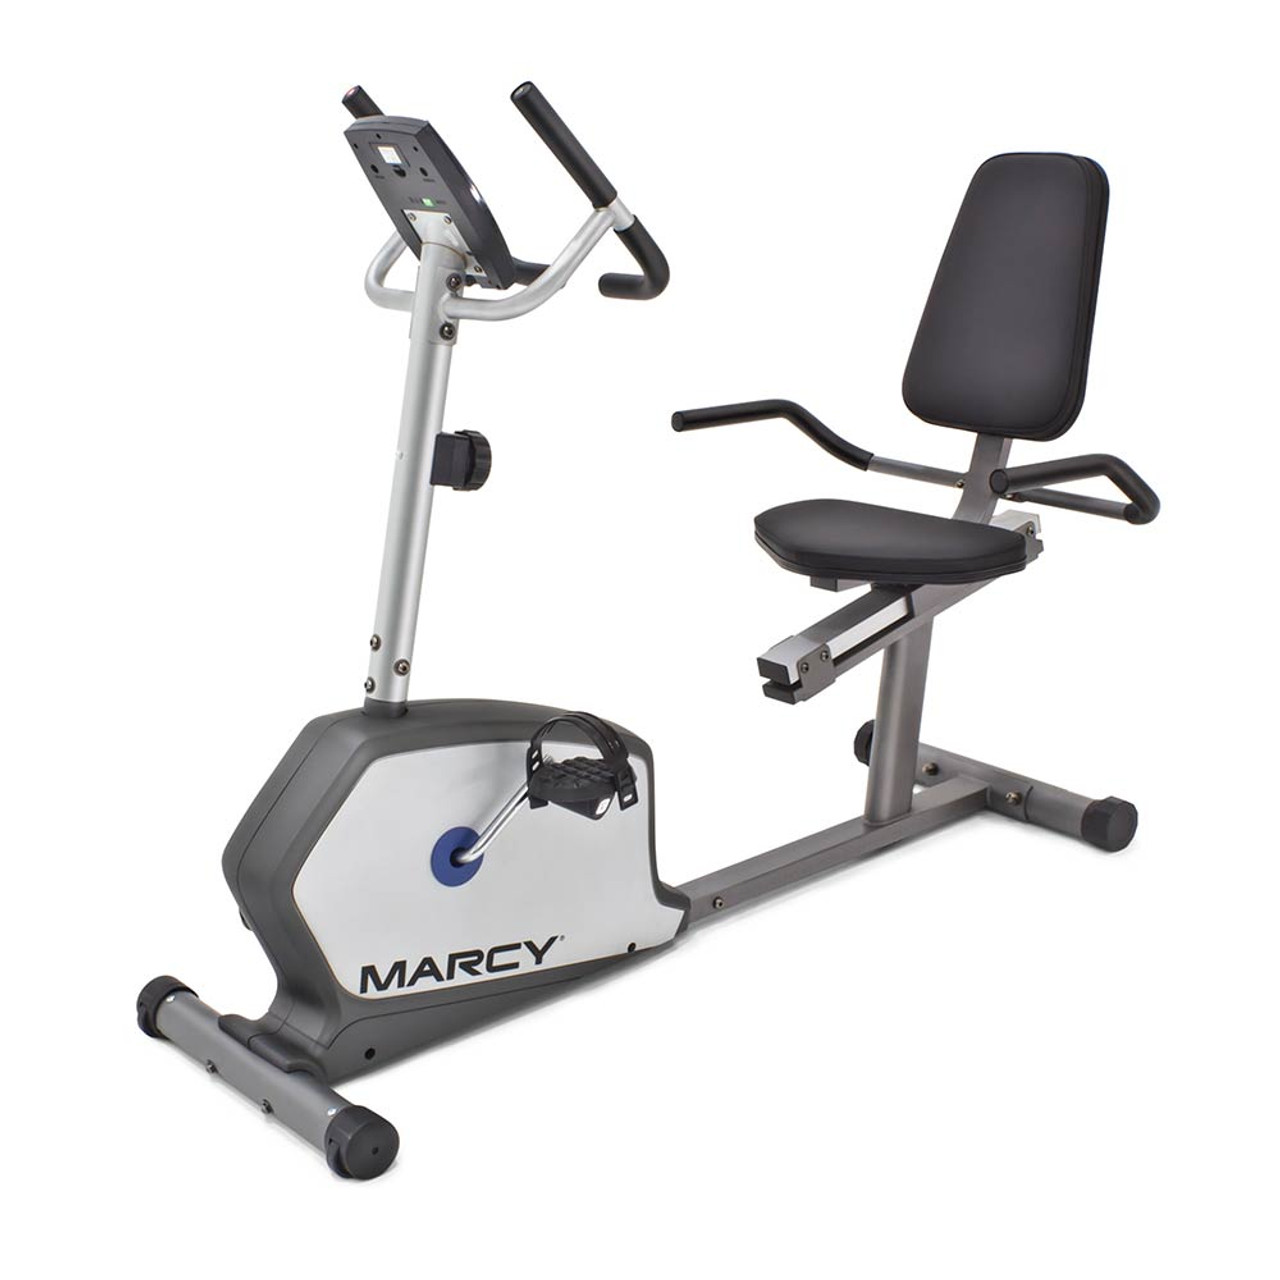 20a81bd6f3b The Marcy Recumbent Bike NS-1201R is a convenient low-impact method of  getting